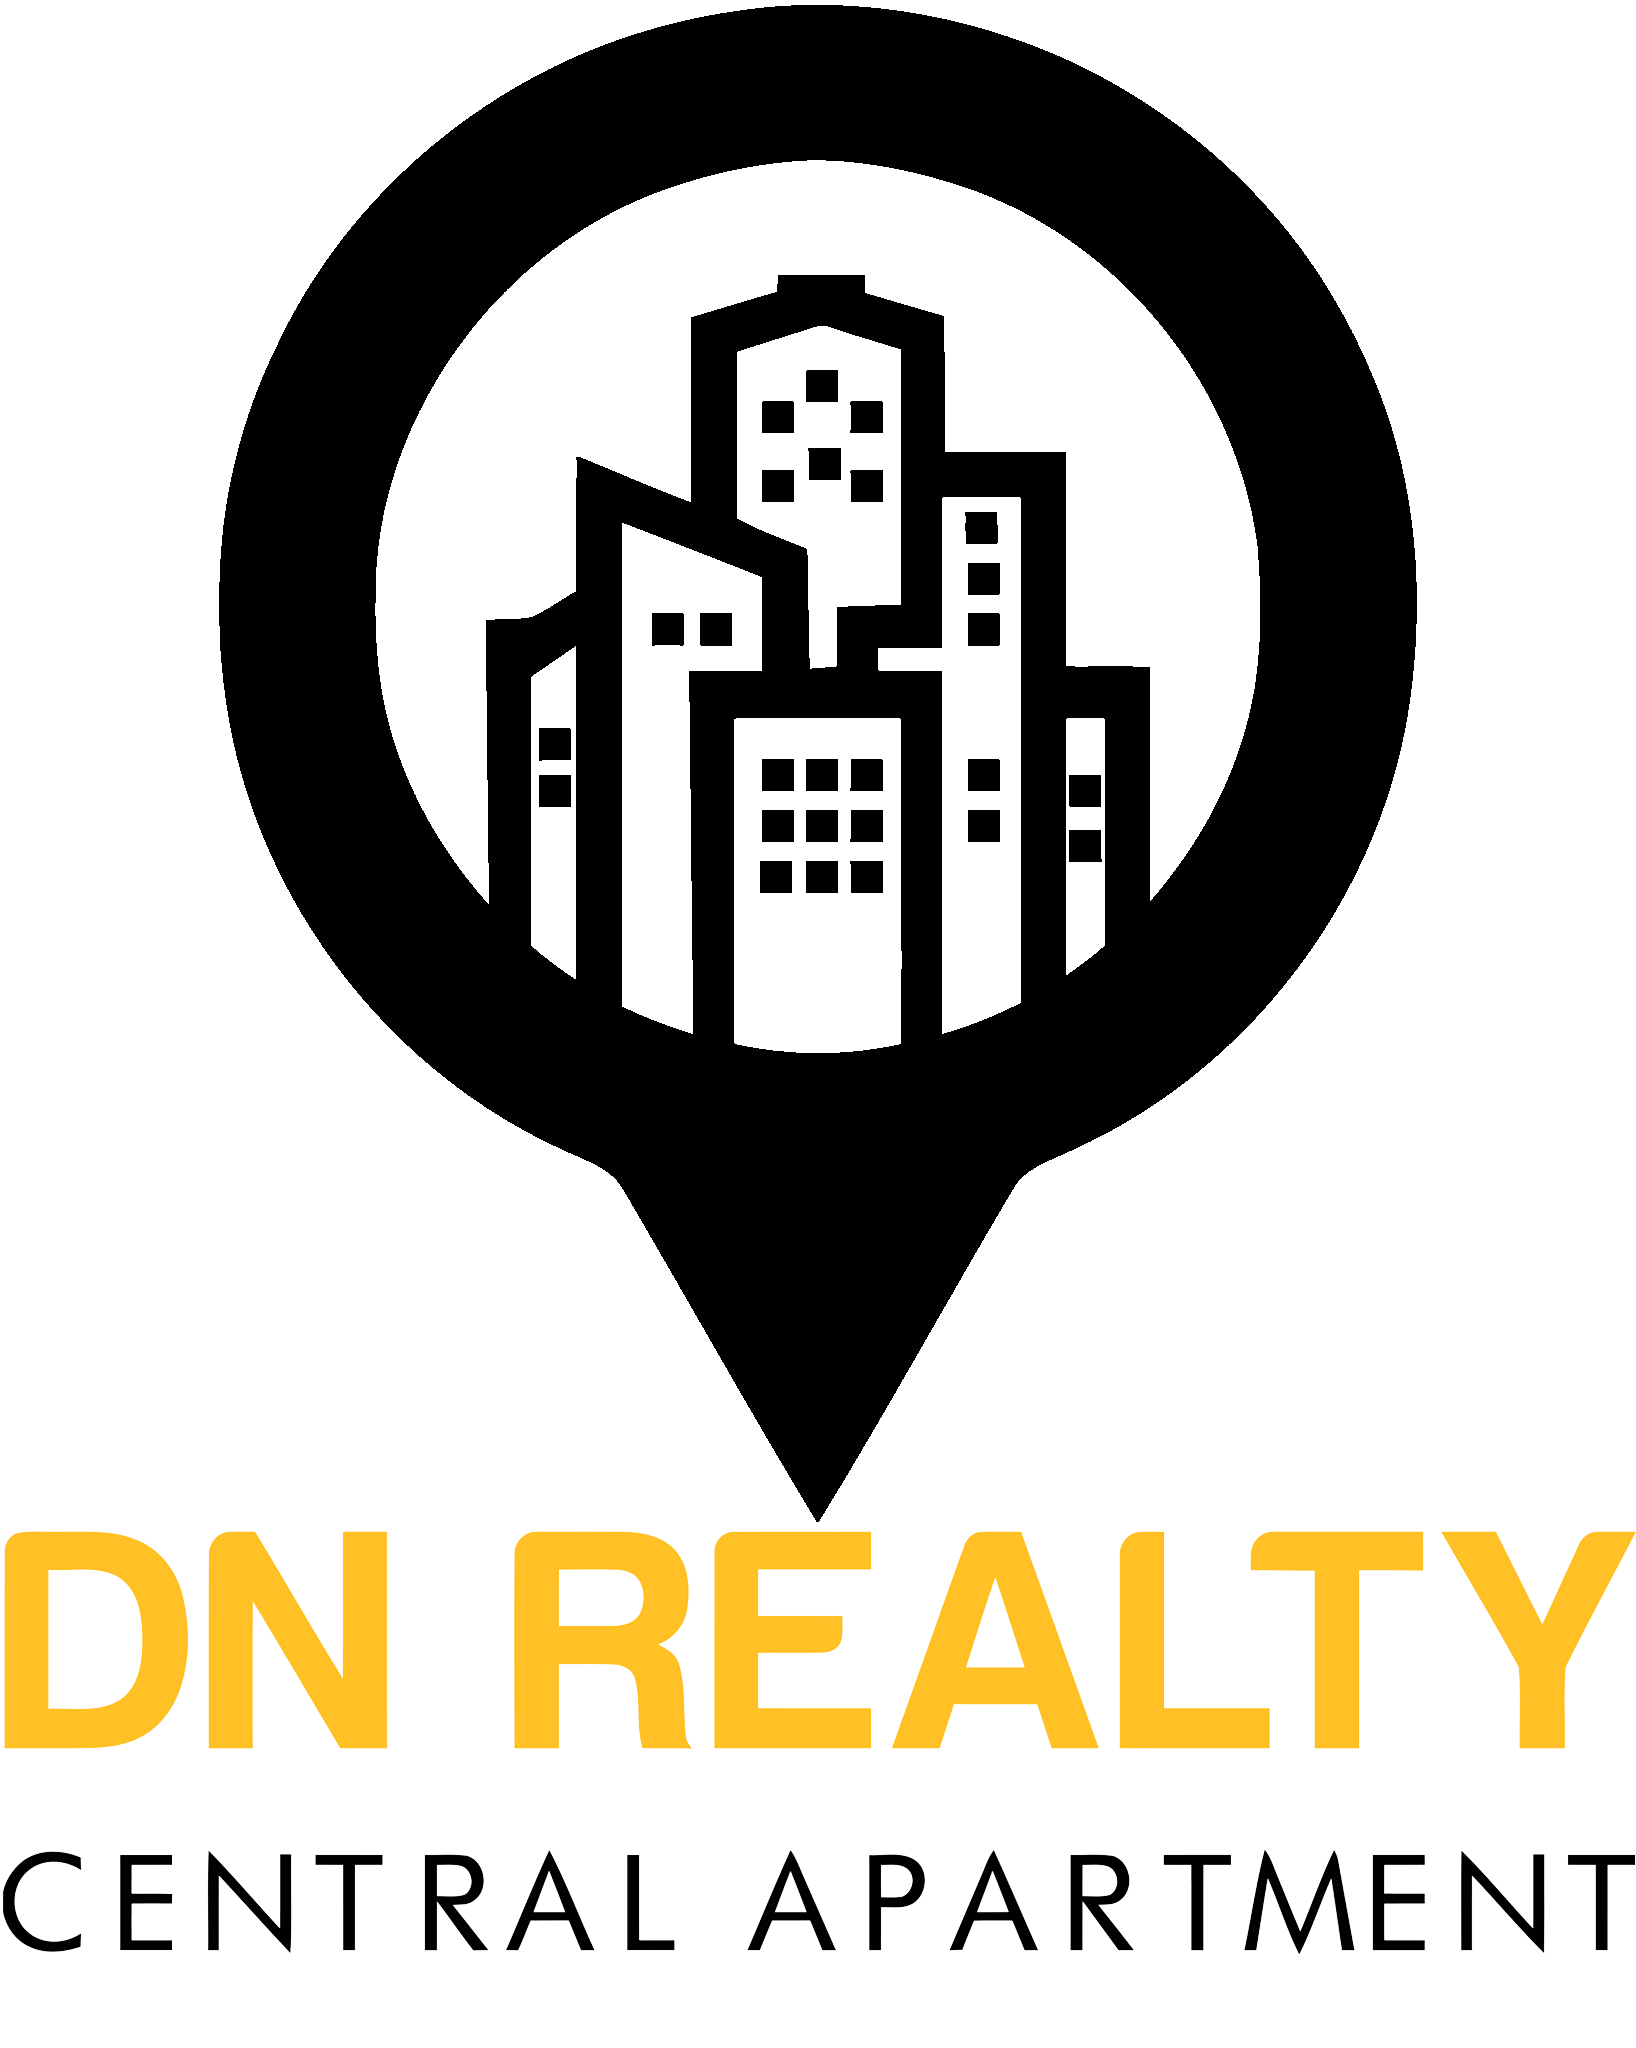 DN Realty